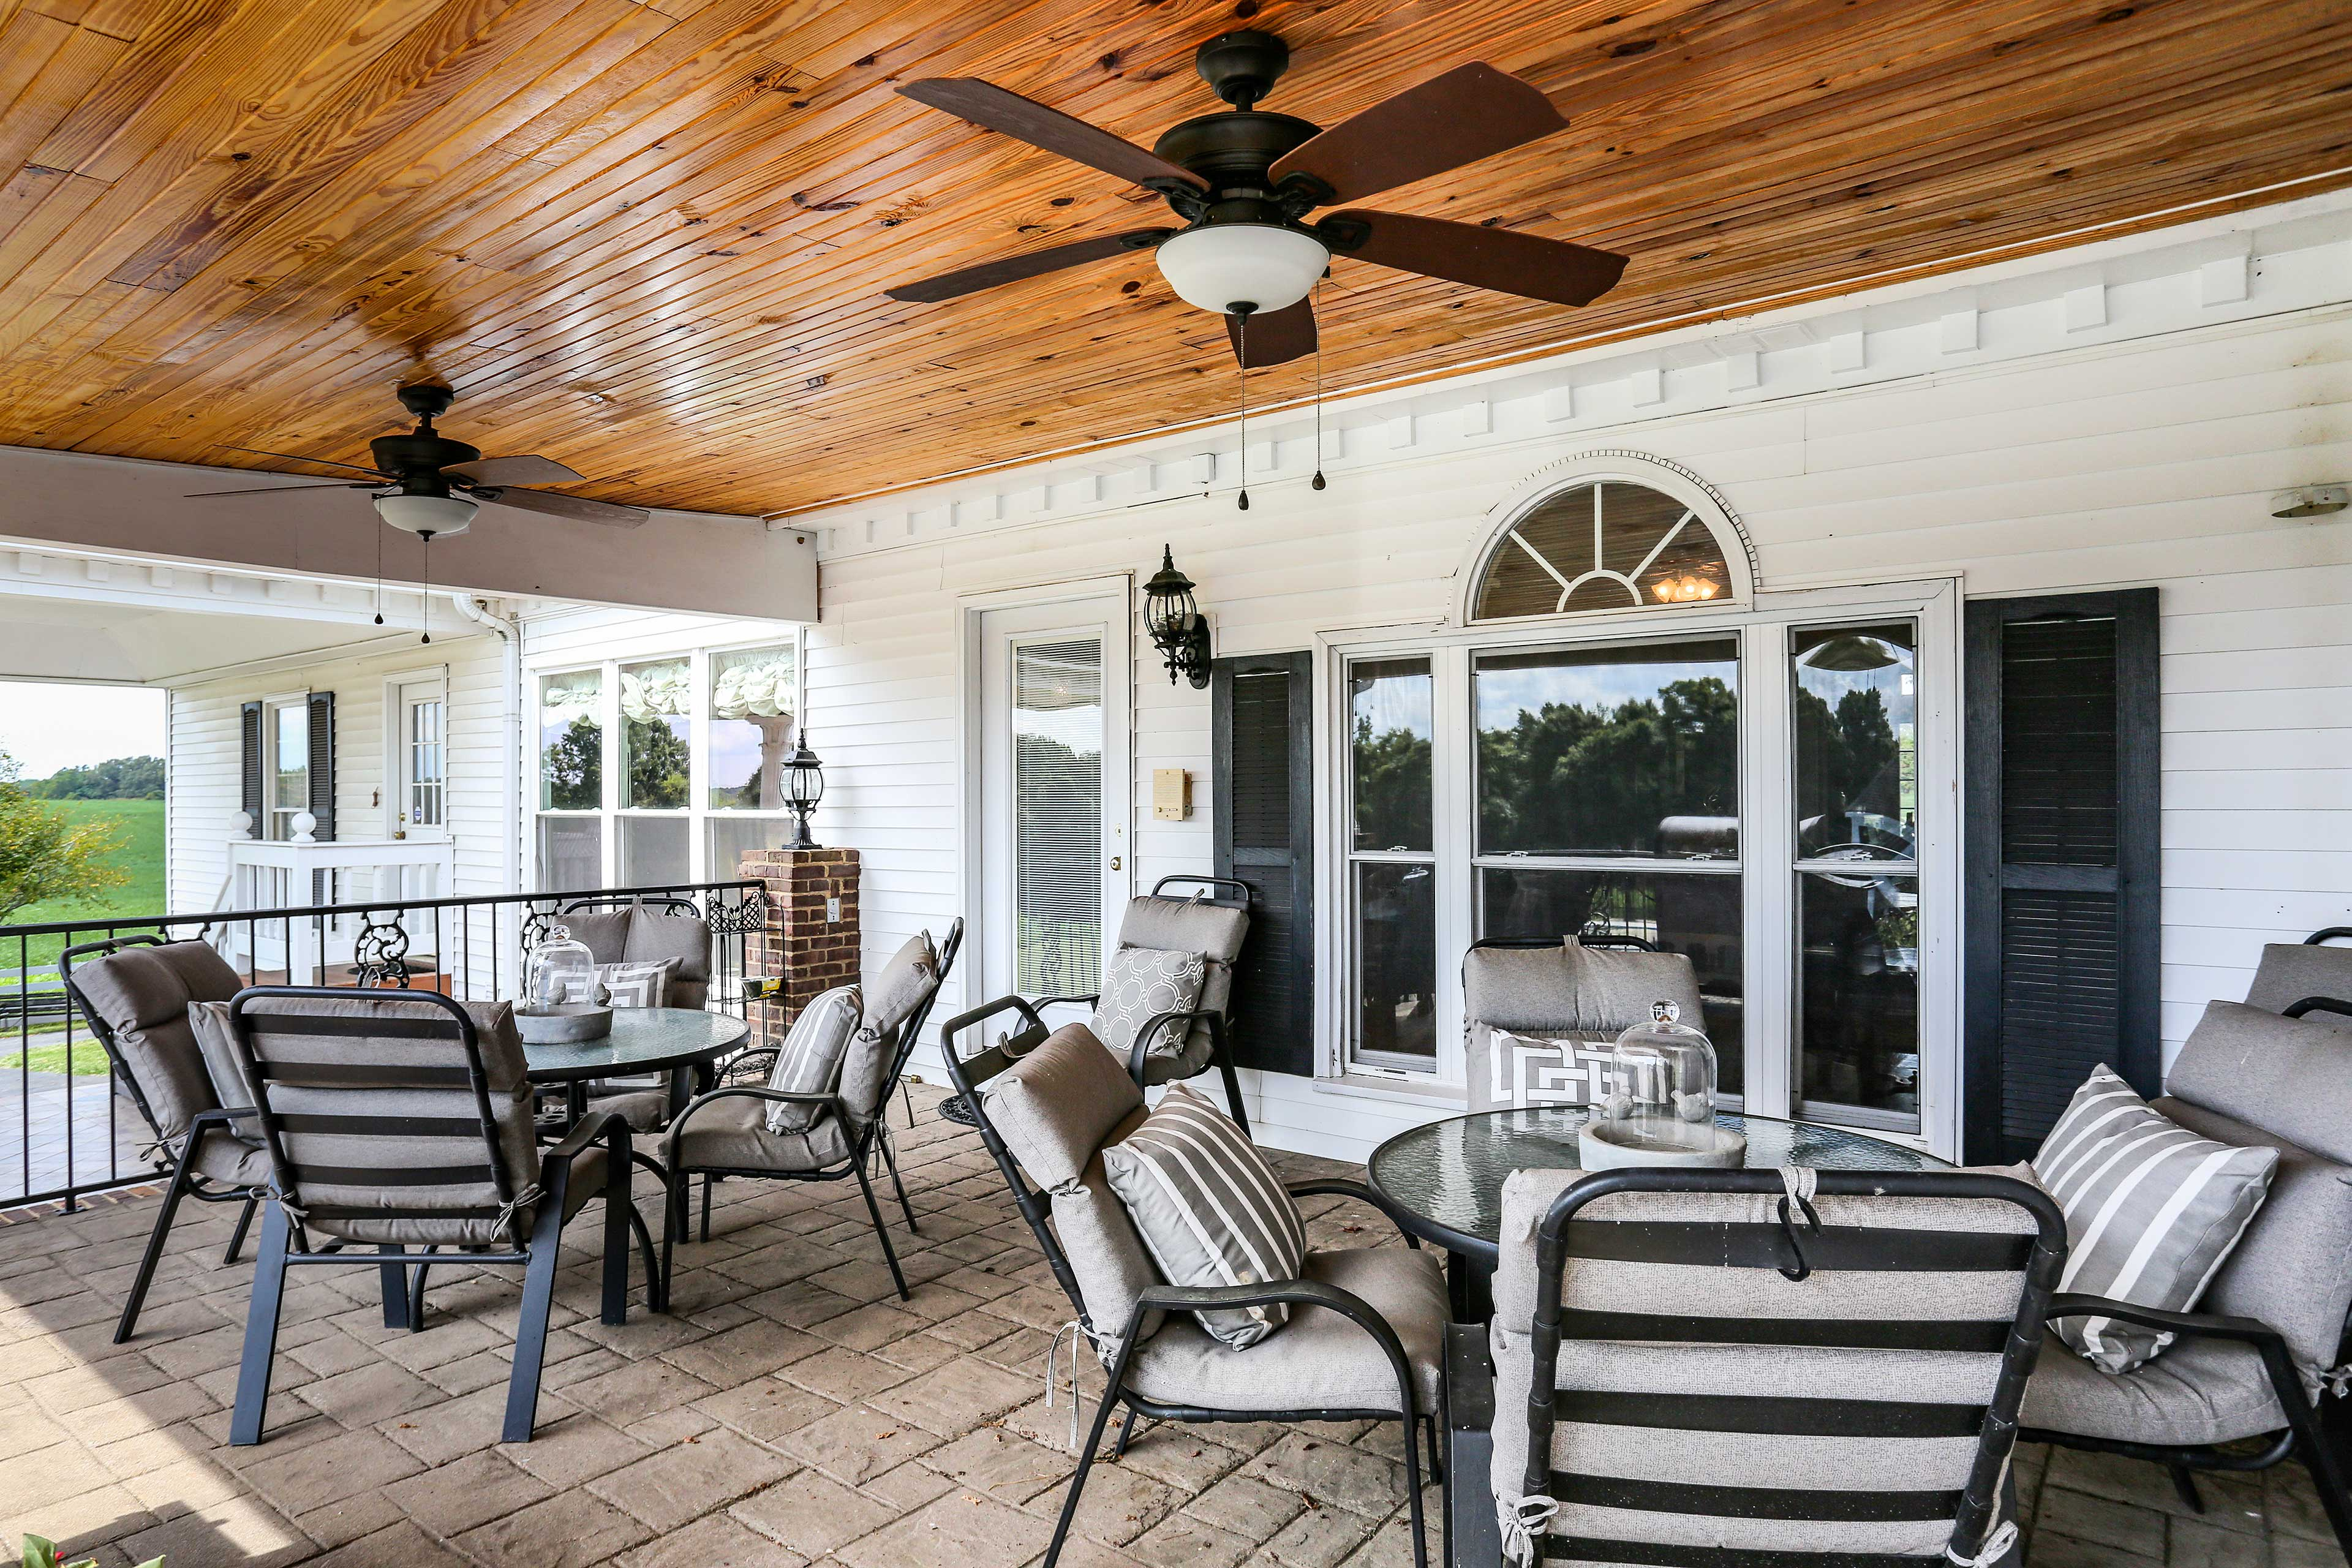 Get some fresh air out on the covered patio!